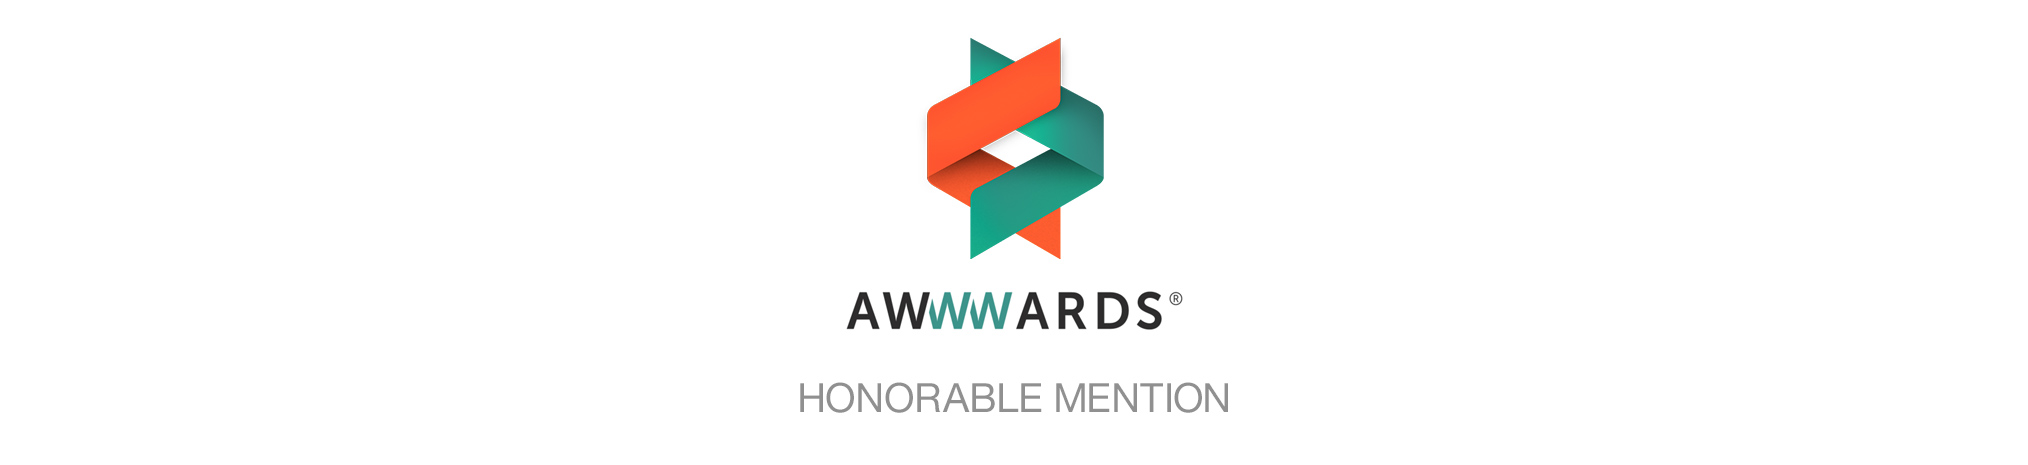 Awwwards.com - Honorable Mention